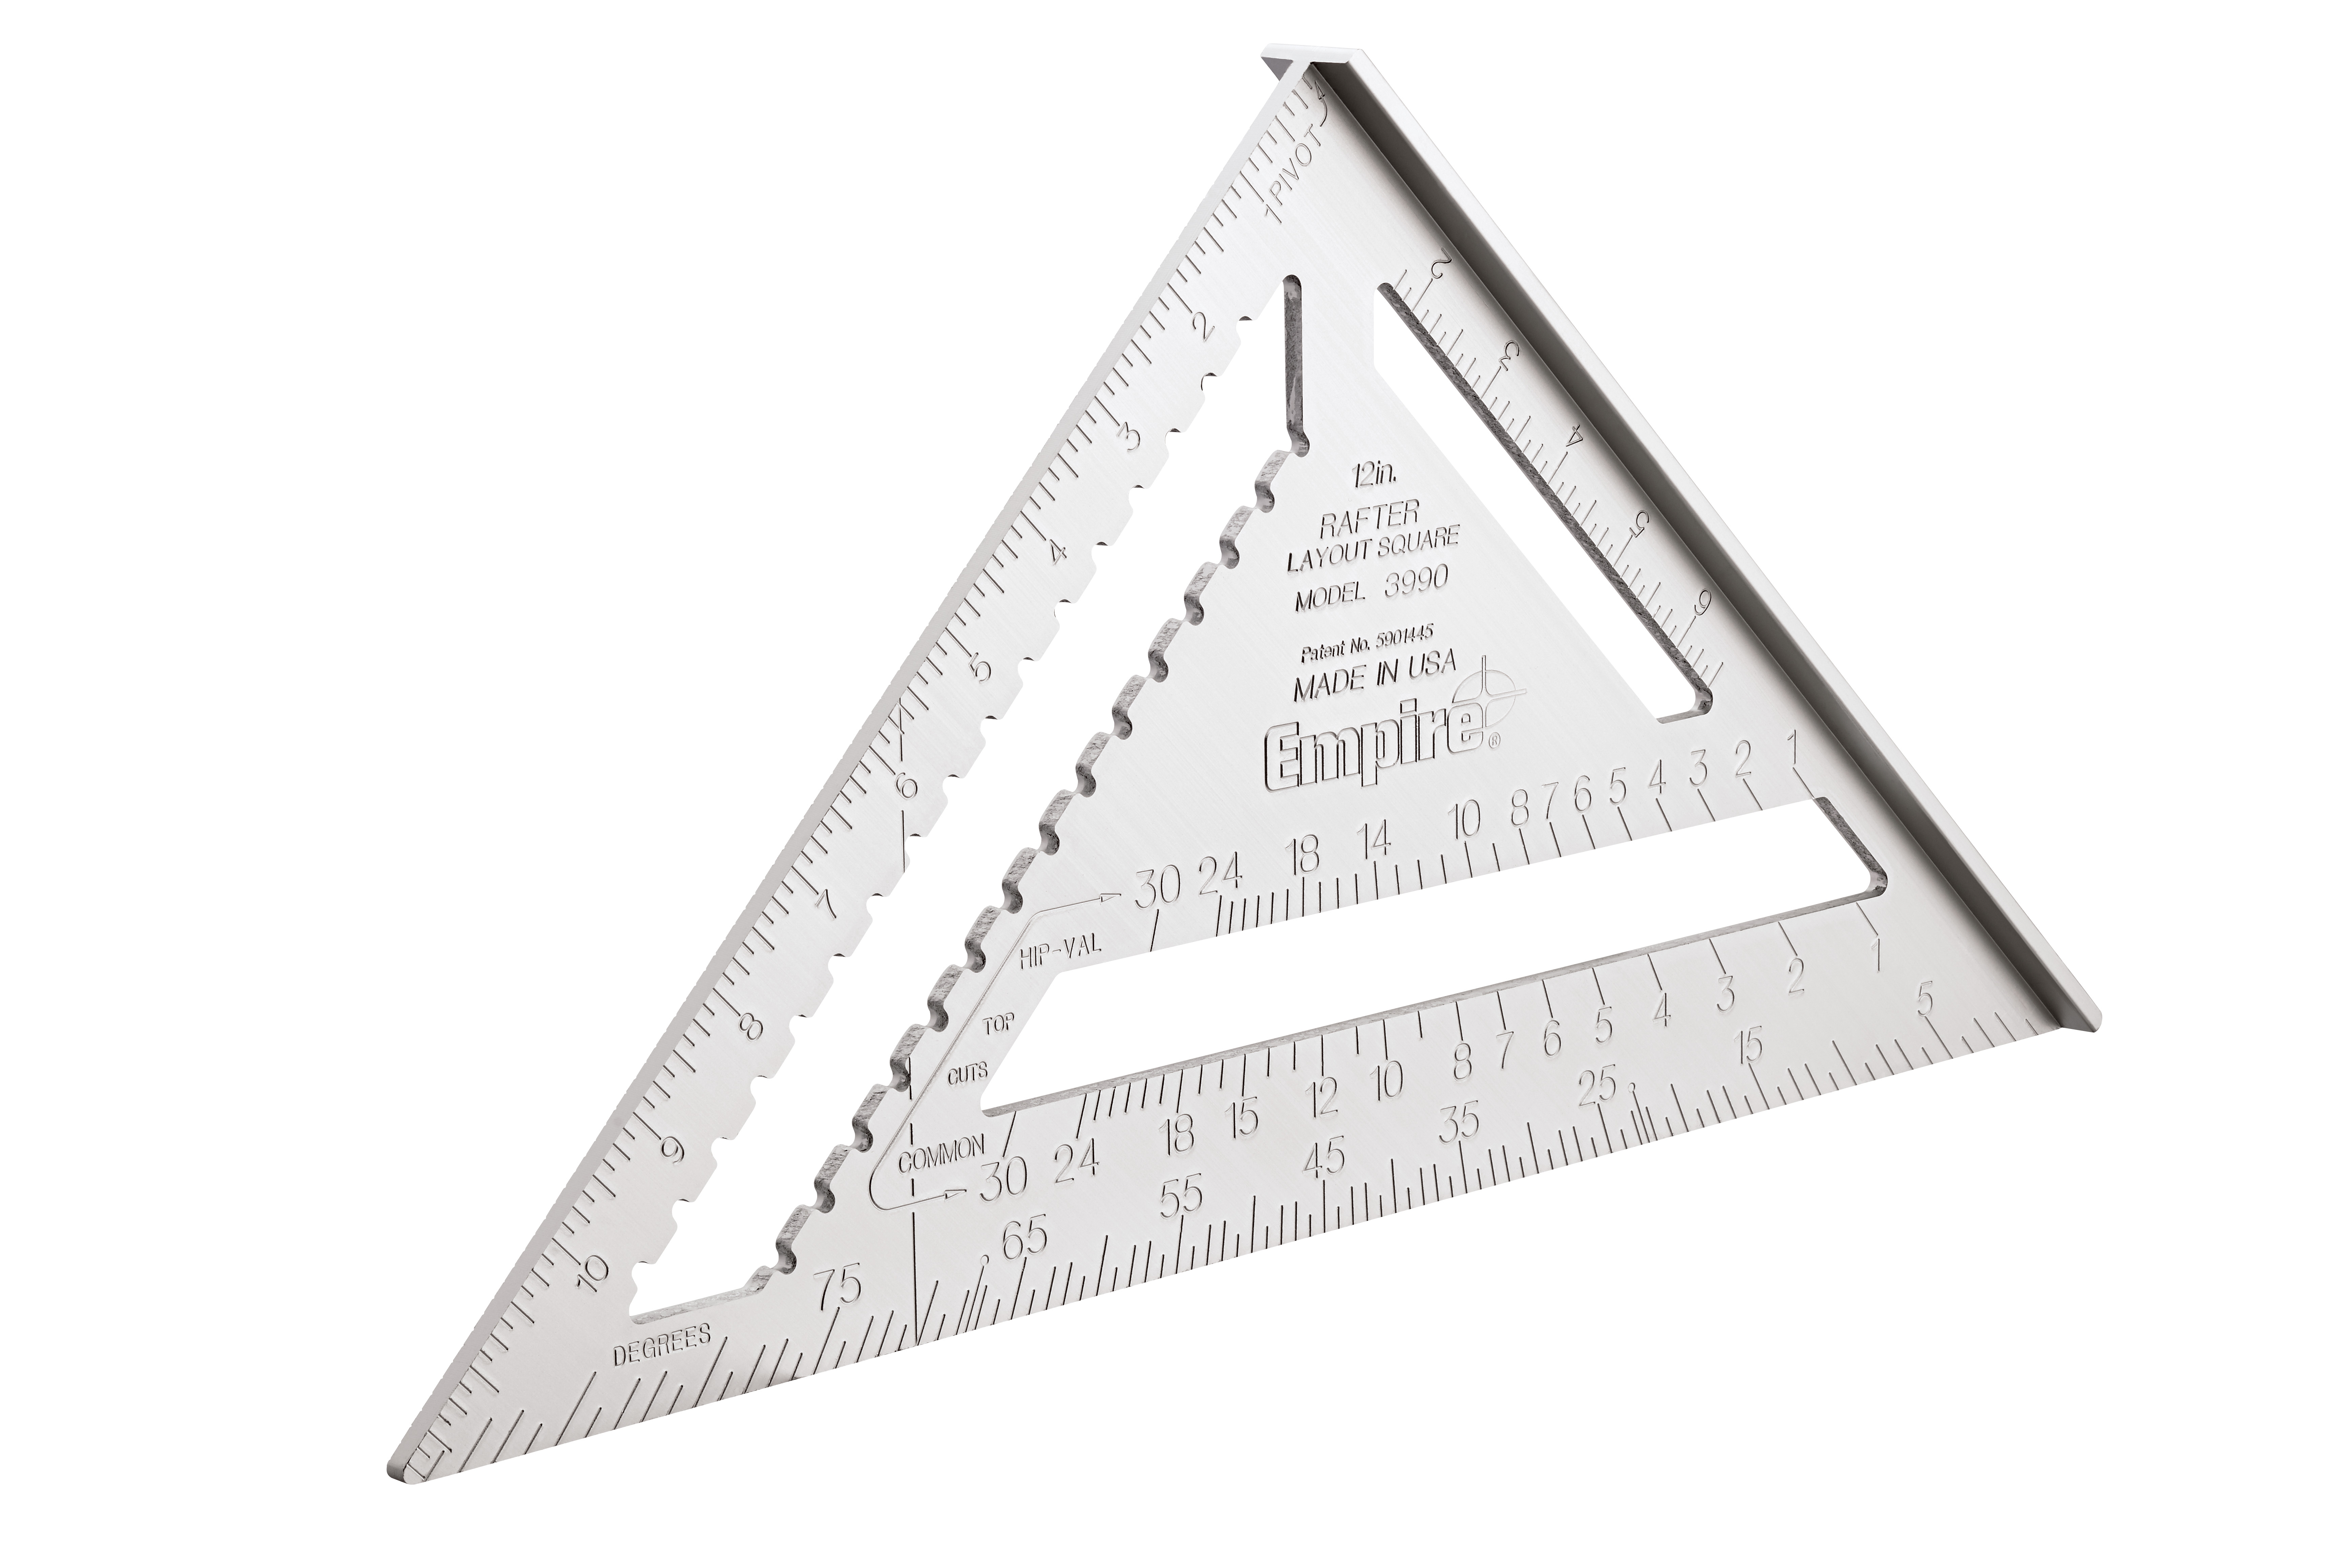 Milwaukee® Empire® Magnum® 3990 Heavy Duty Rafter Square, 12 in L, 1/8 in Graduation, 12 in Tongue, Aluminum